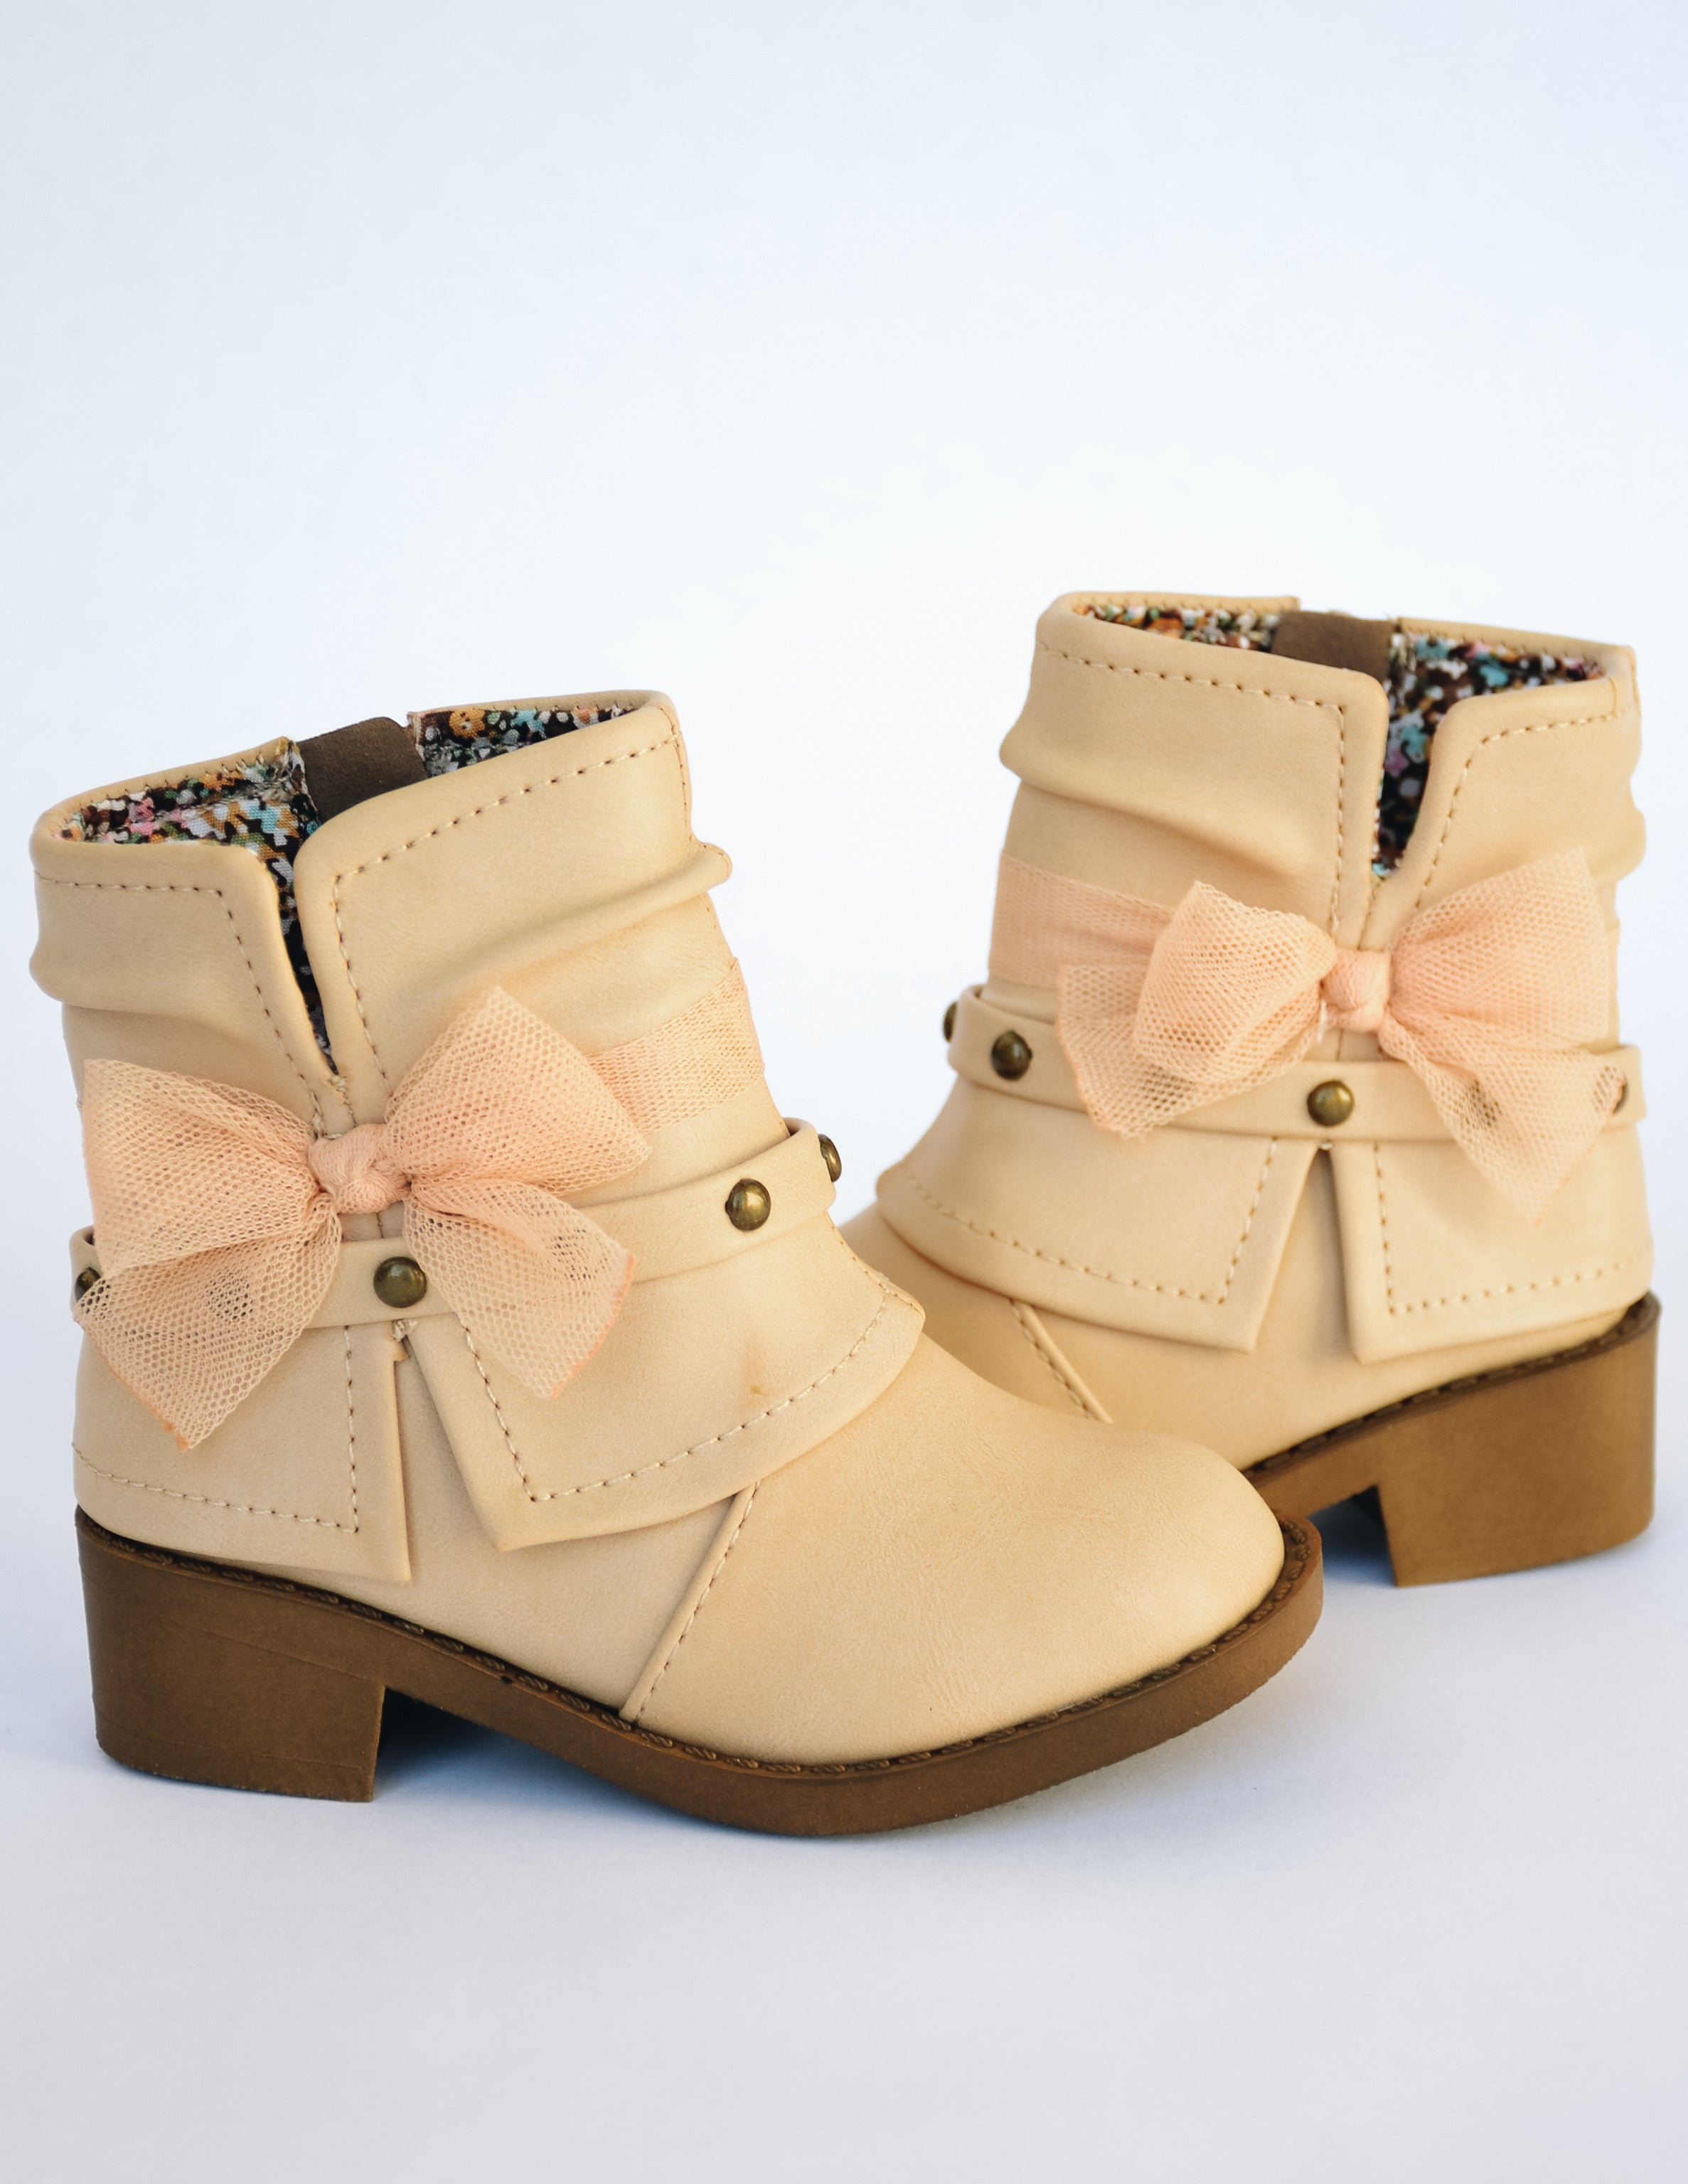 Toddler girl Nikki boot with stud strap, tulle bow, and side zipper - Elle Bleu Shoe Boutique